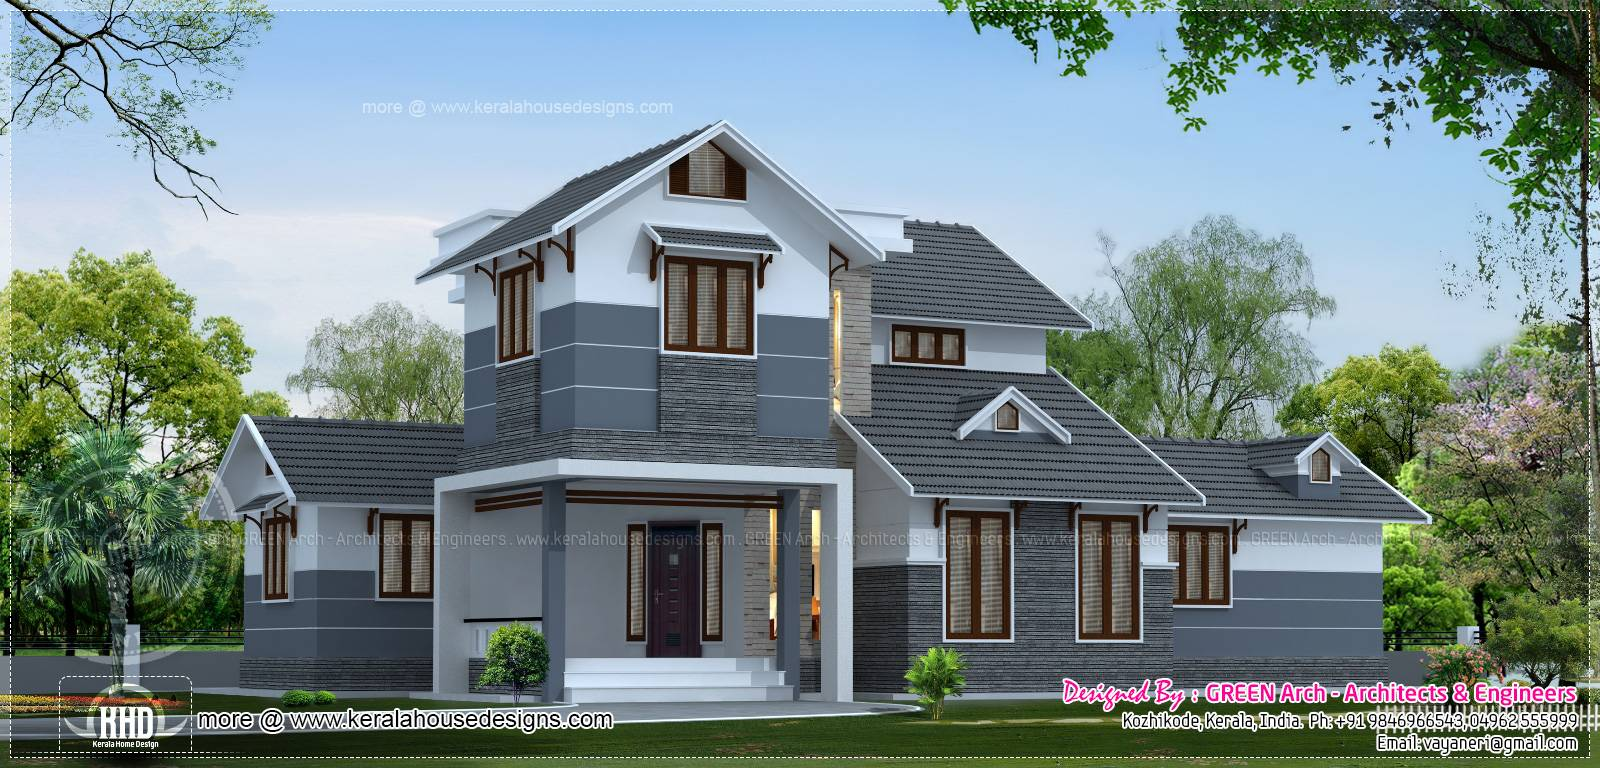 Home design types 2380 sq ft box type house kerala home design and - Admirable Awesome Different Types Of House Plans 18 Pictures House Plans Free Home Designs Photos Ideas